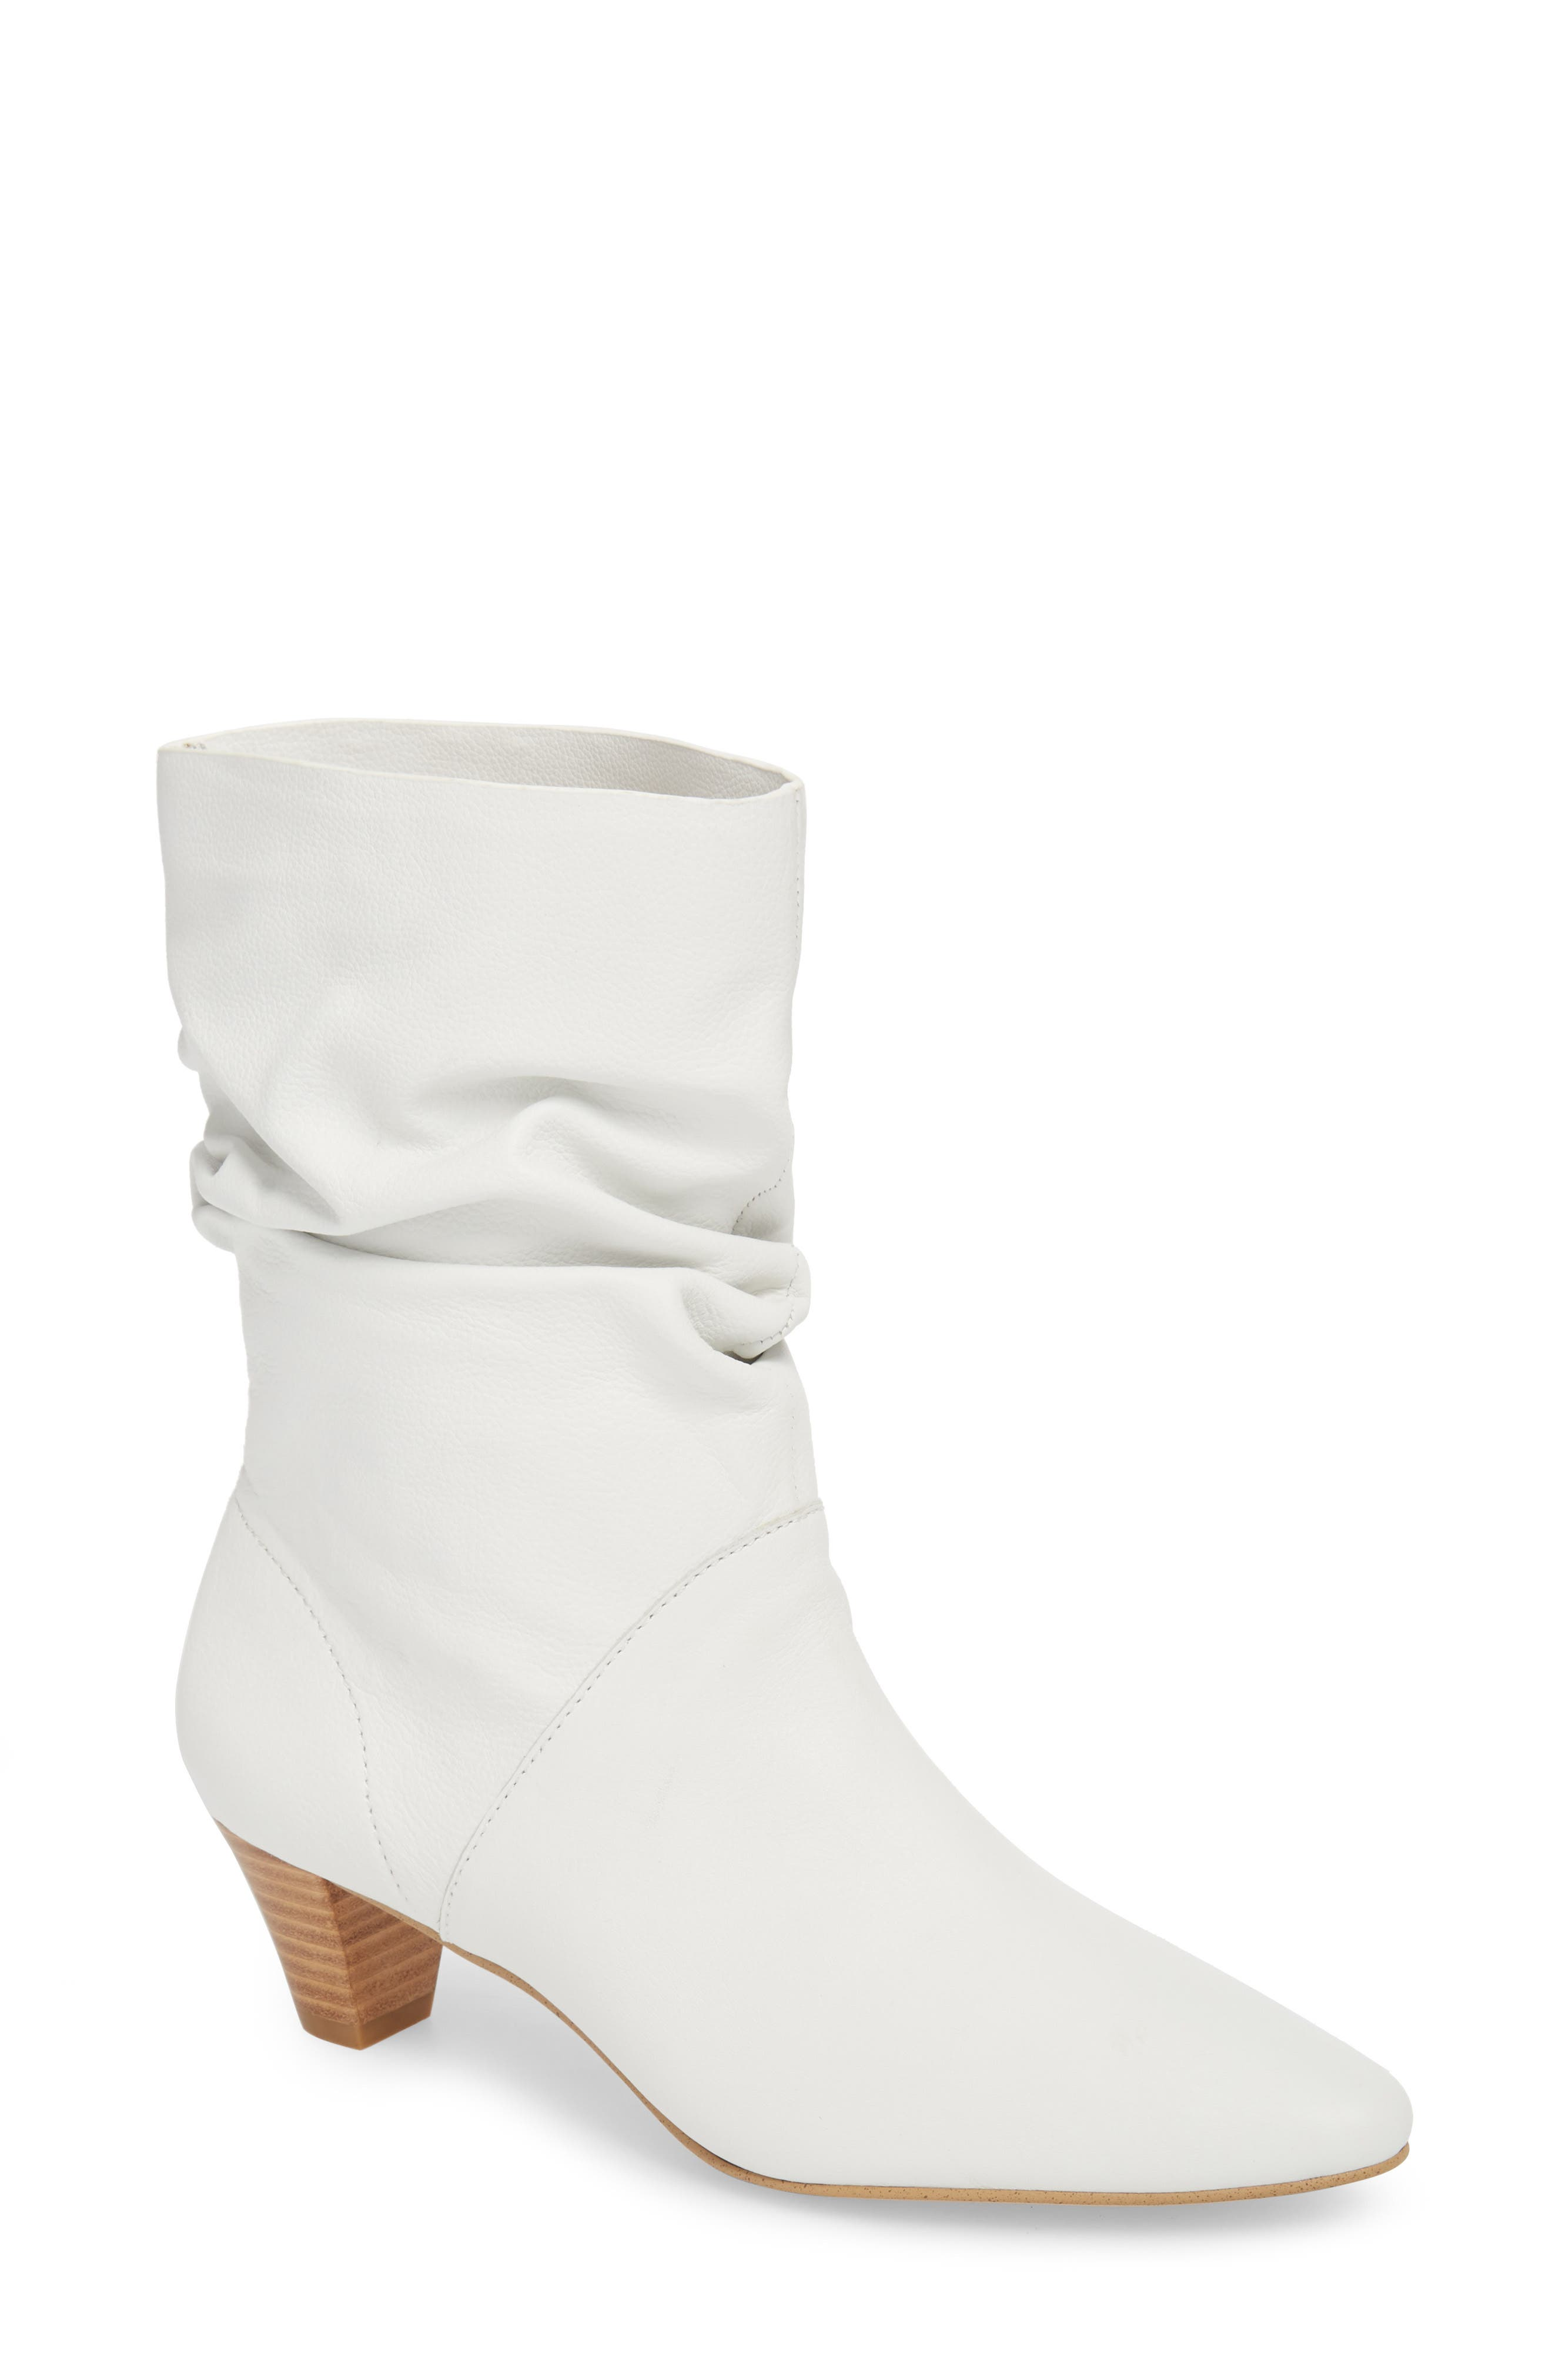 Nica Slouchy Boot,                             Main thumbnail 1, color,                             SNOW WHITE LEATHER